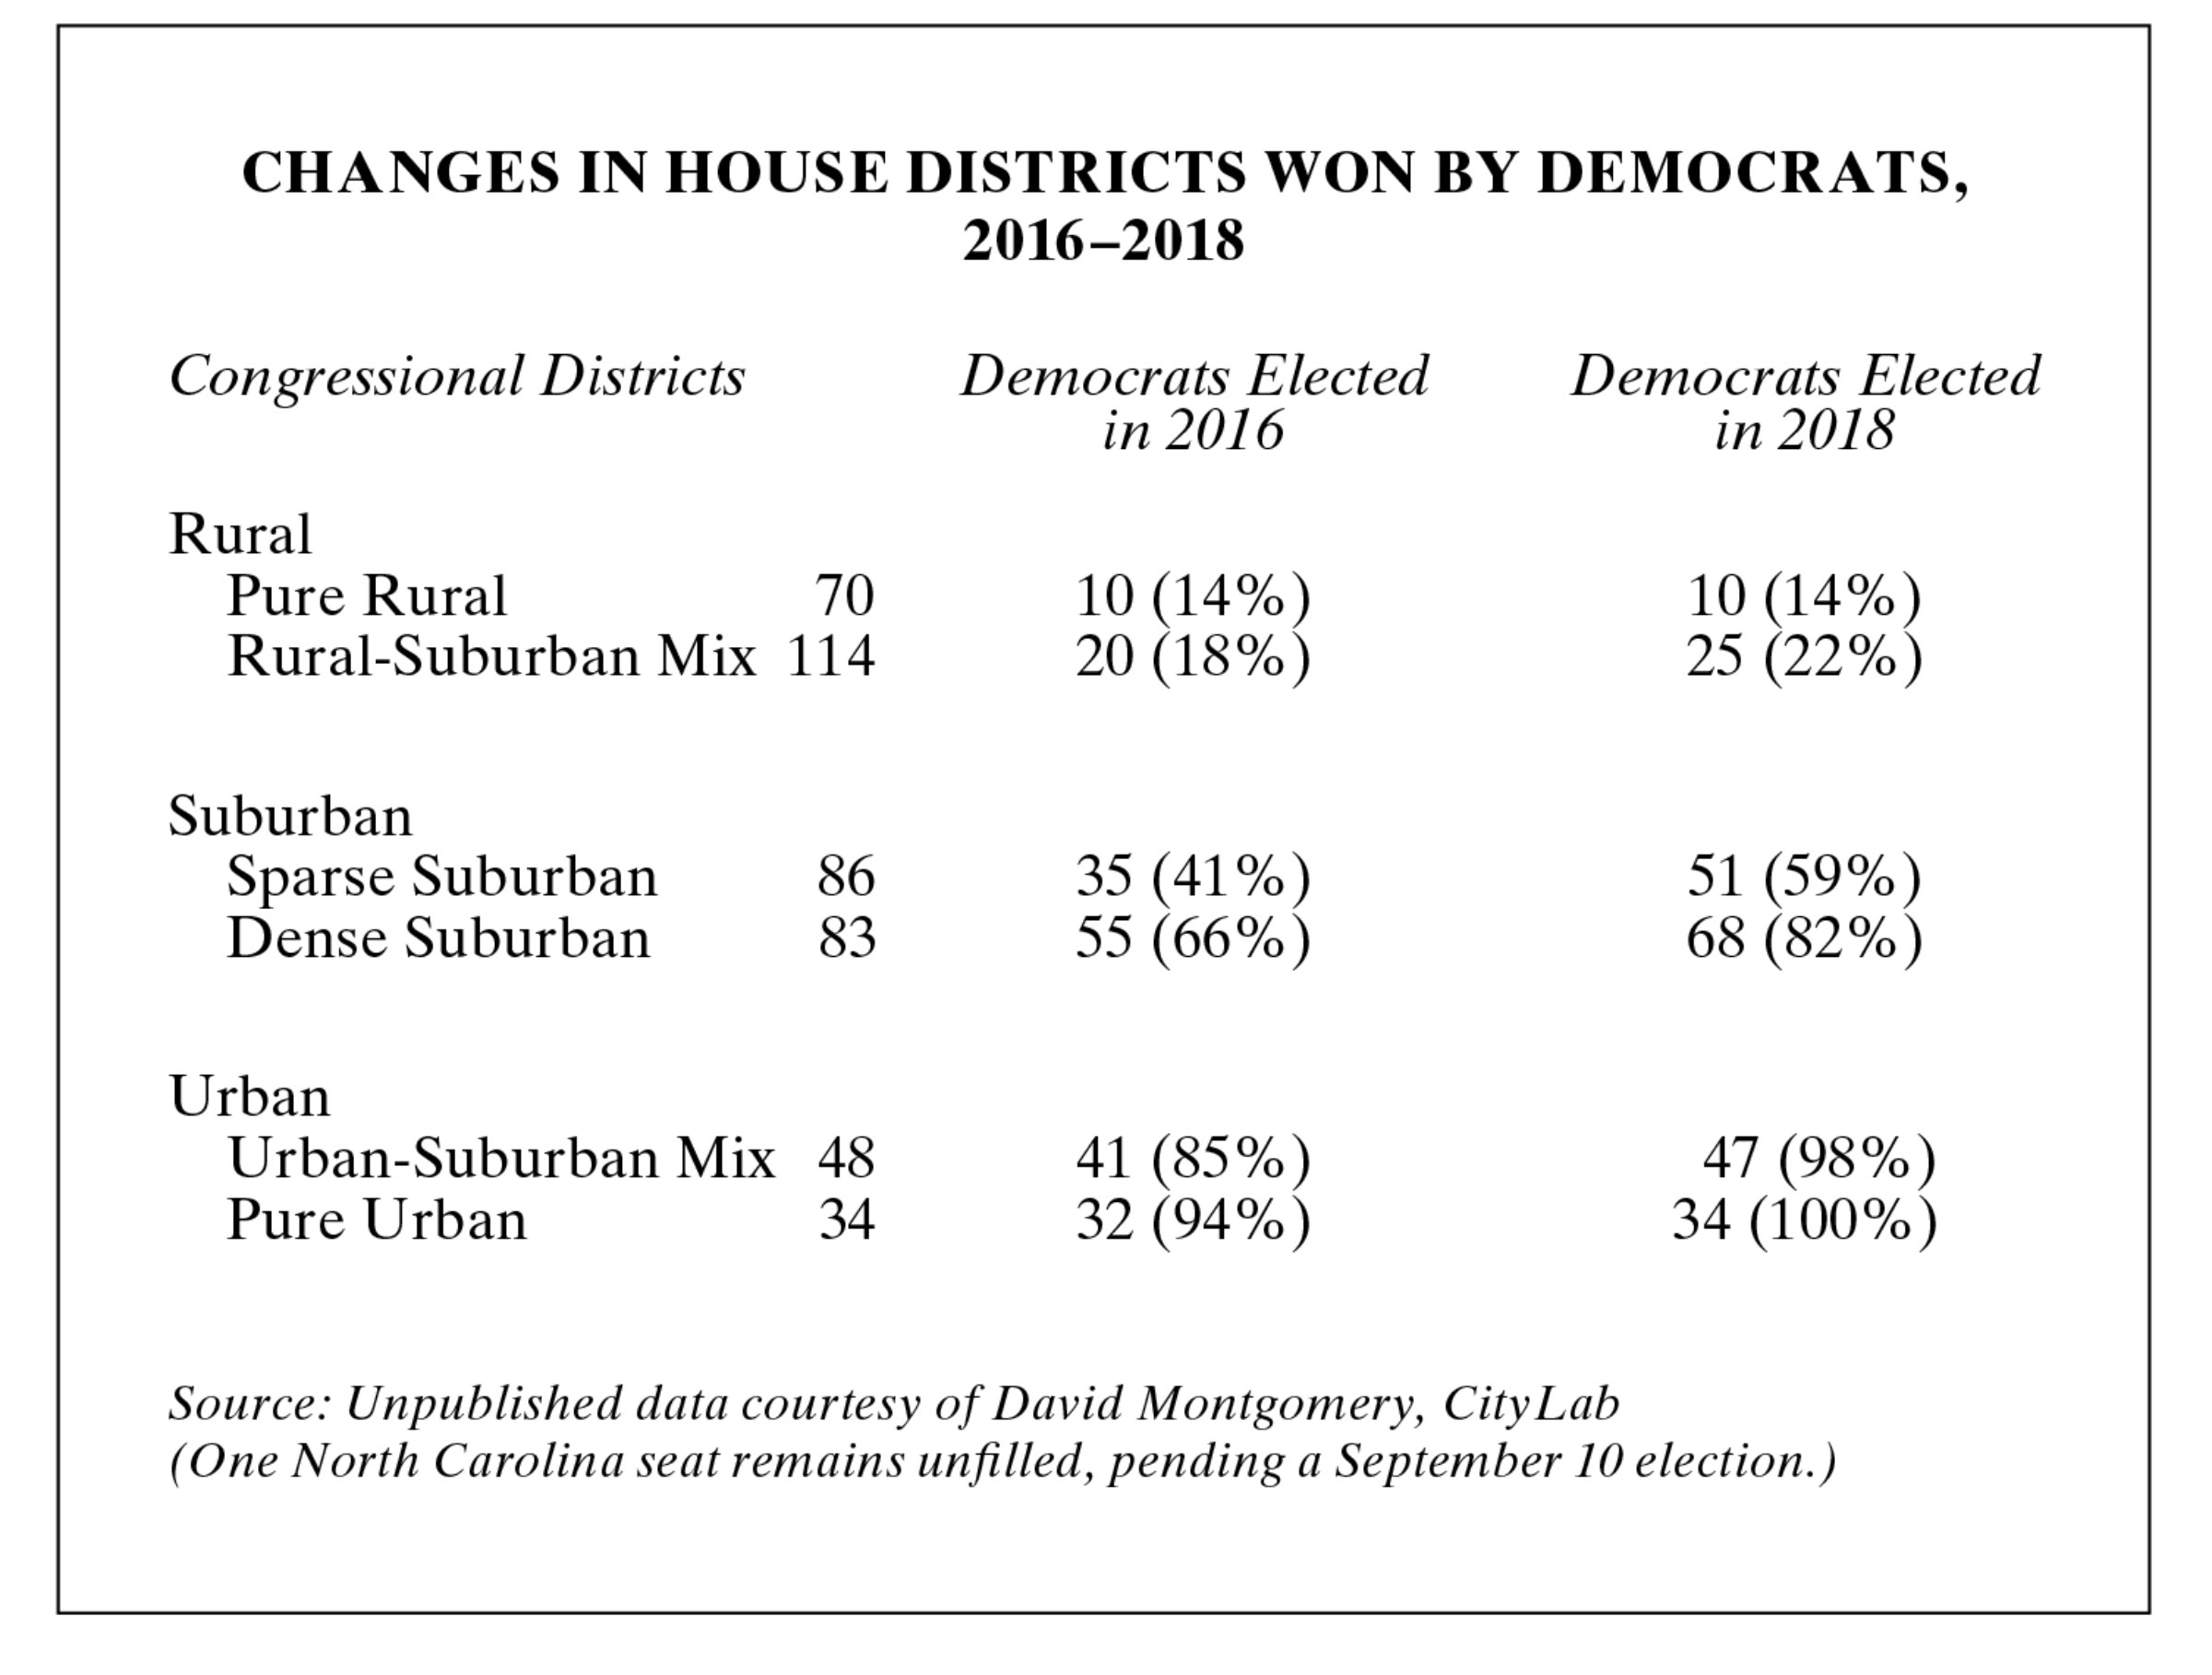 Table of changes in house districts won by democrats, 2016-2018